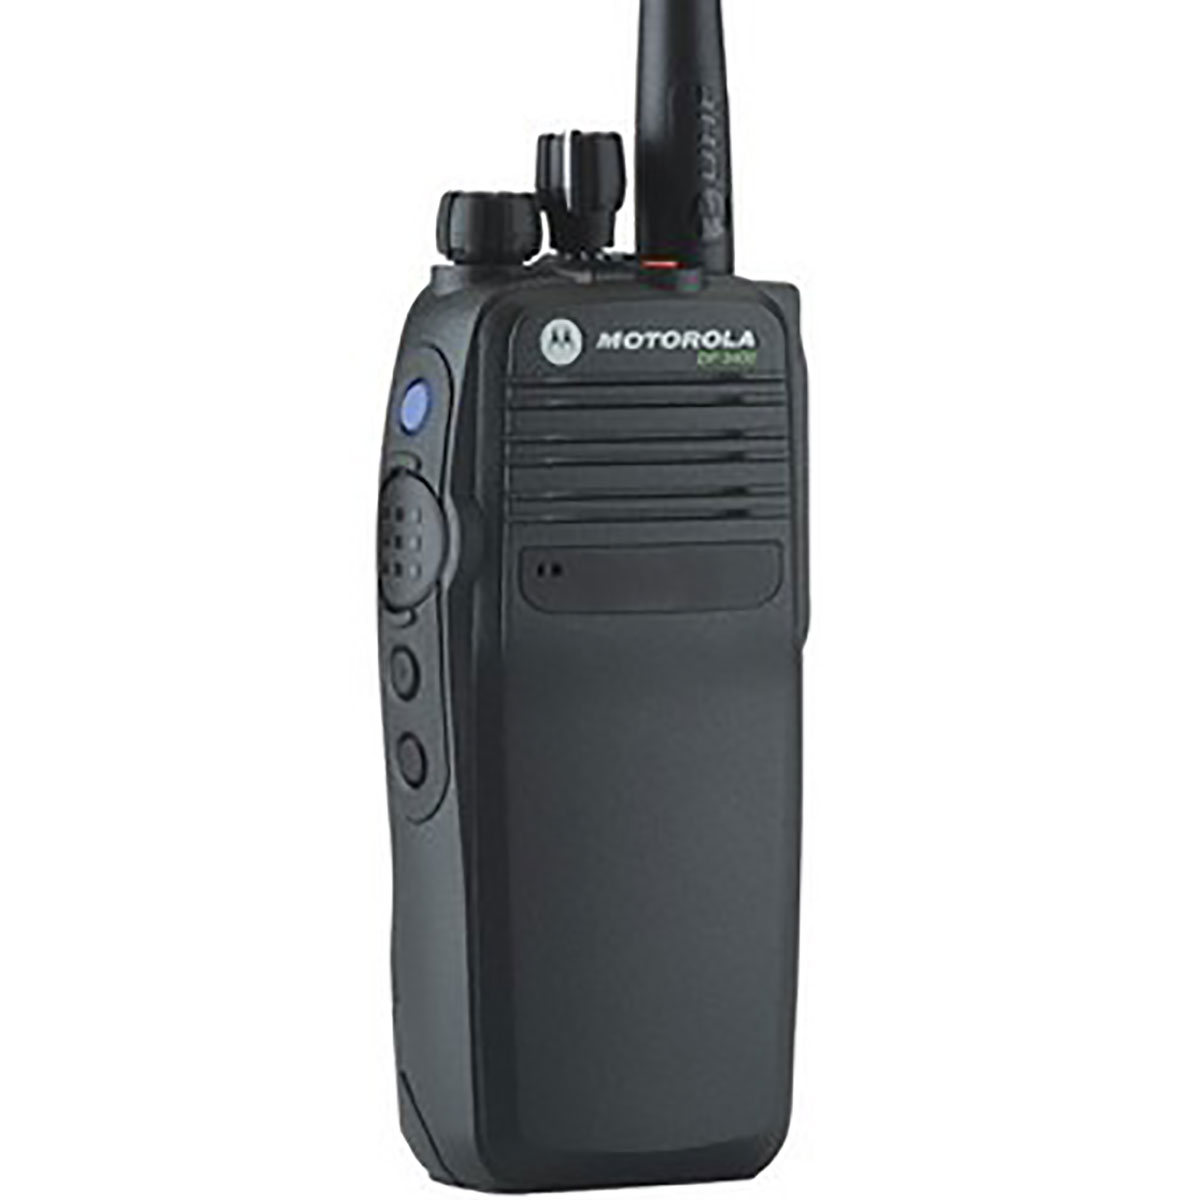 Motorola DP3400/ 3401 Digital Portable Radio Solution | MOTOTRBO